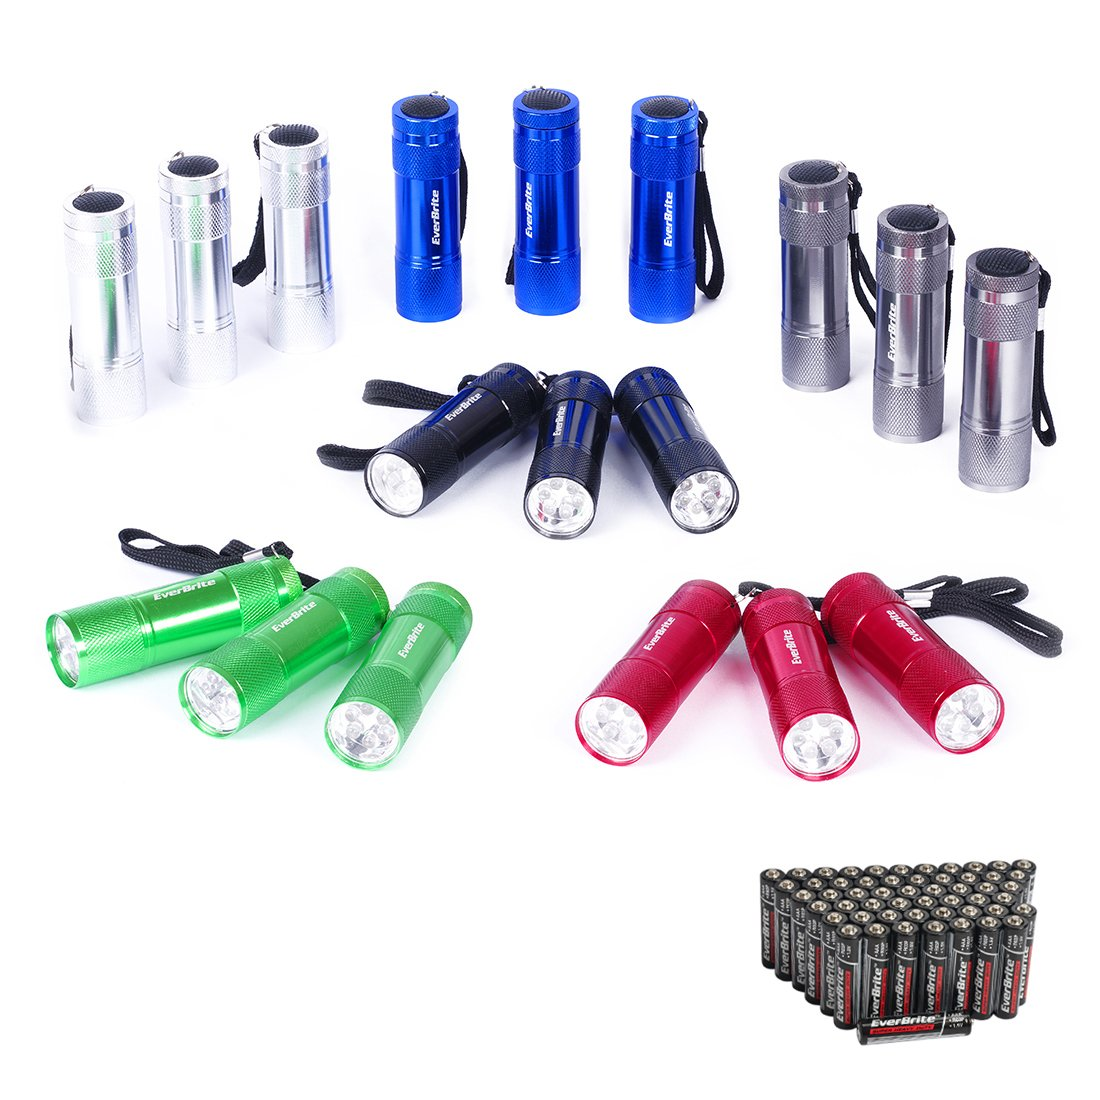 EverBrite 18PC LED Flashlight Mini Torch, Battery Powered Torch Light with Keychain, Mini Pocket Torches Multi Color for Kids Fun, Camping Hiking Hunting LTD E000007AU